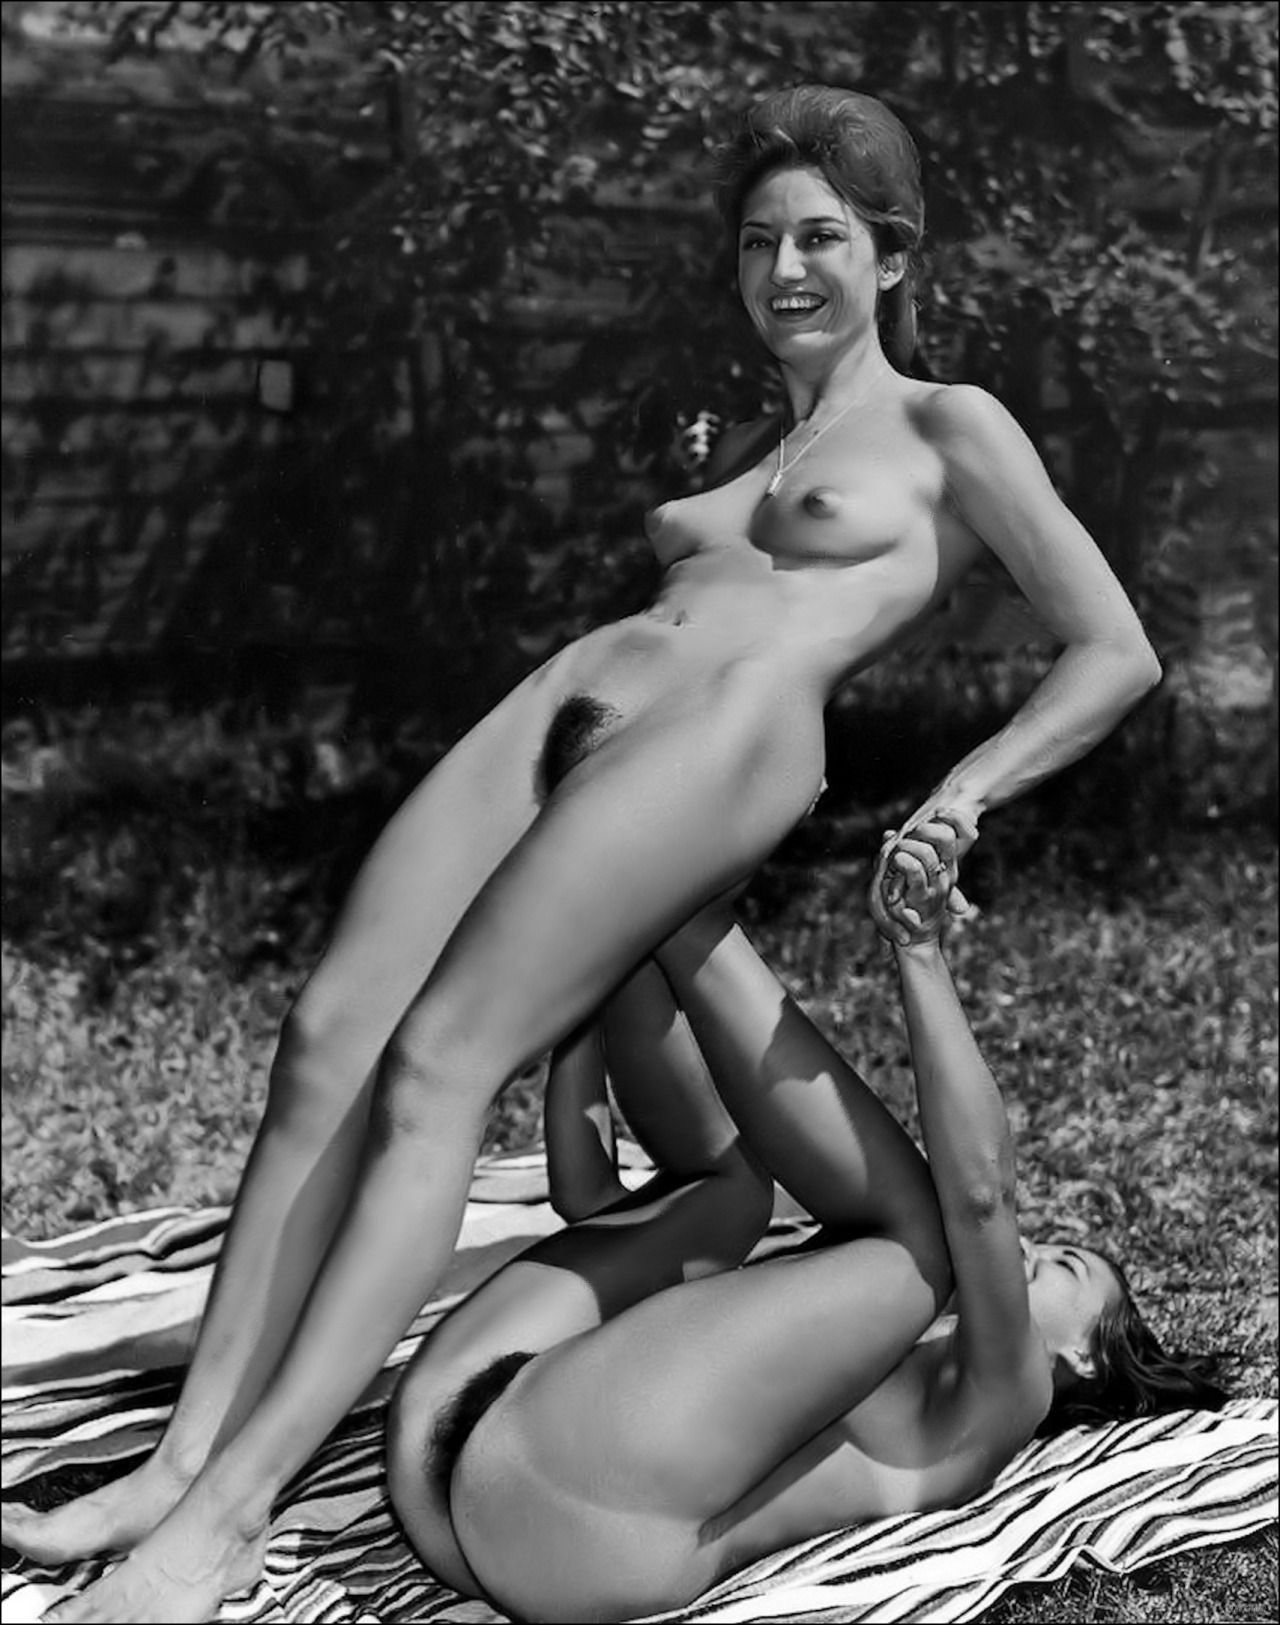 retro nudist women The Greatest Classic Nudist Photos Anywhere.